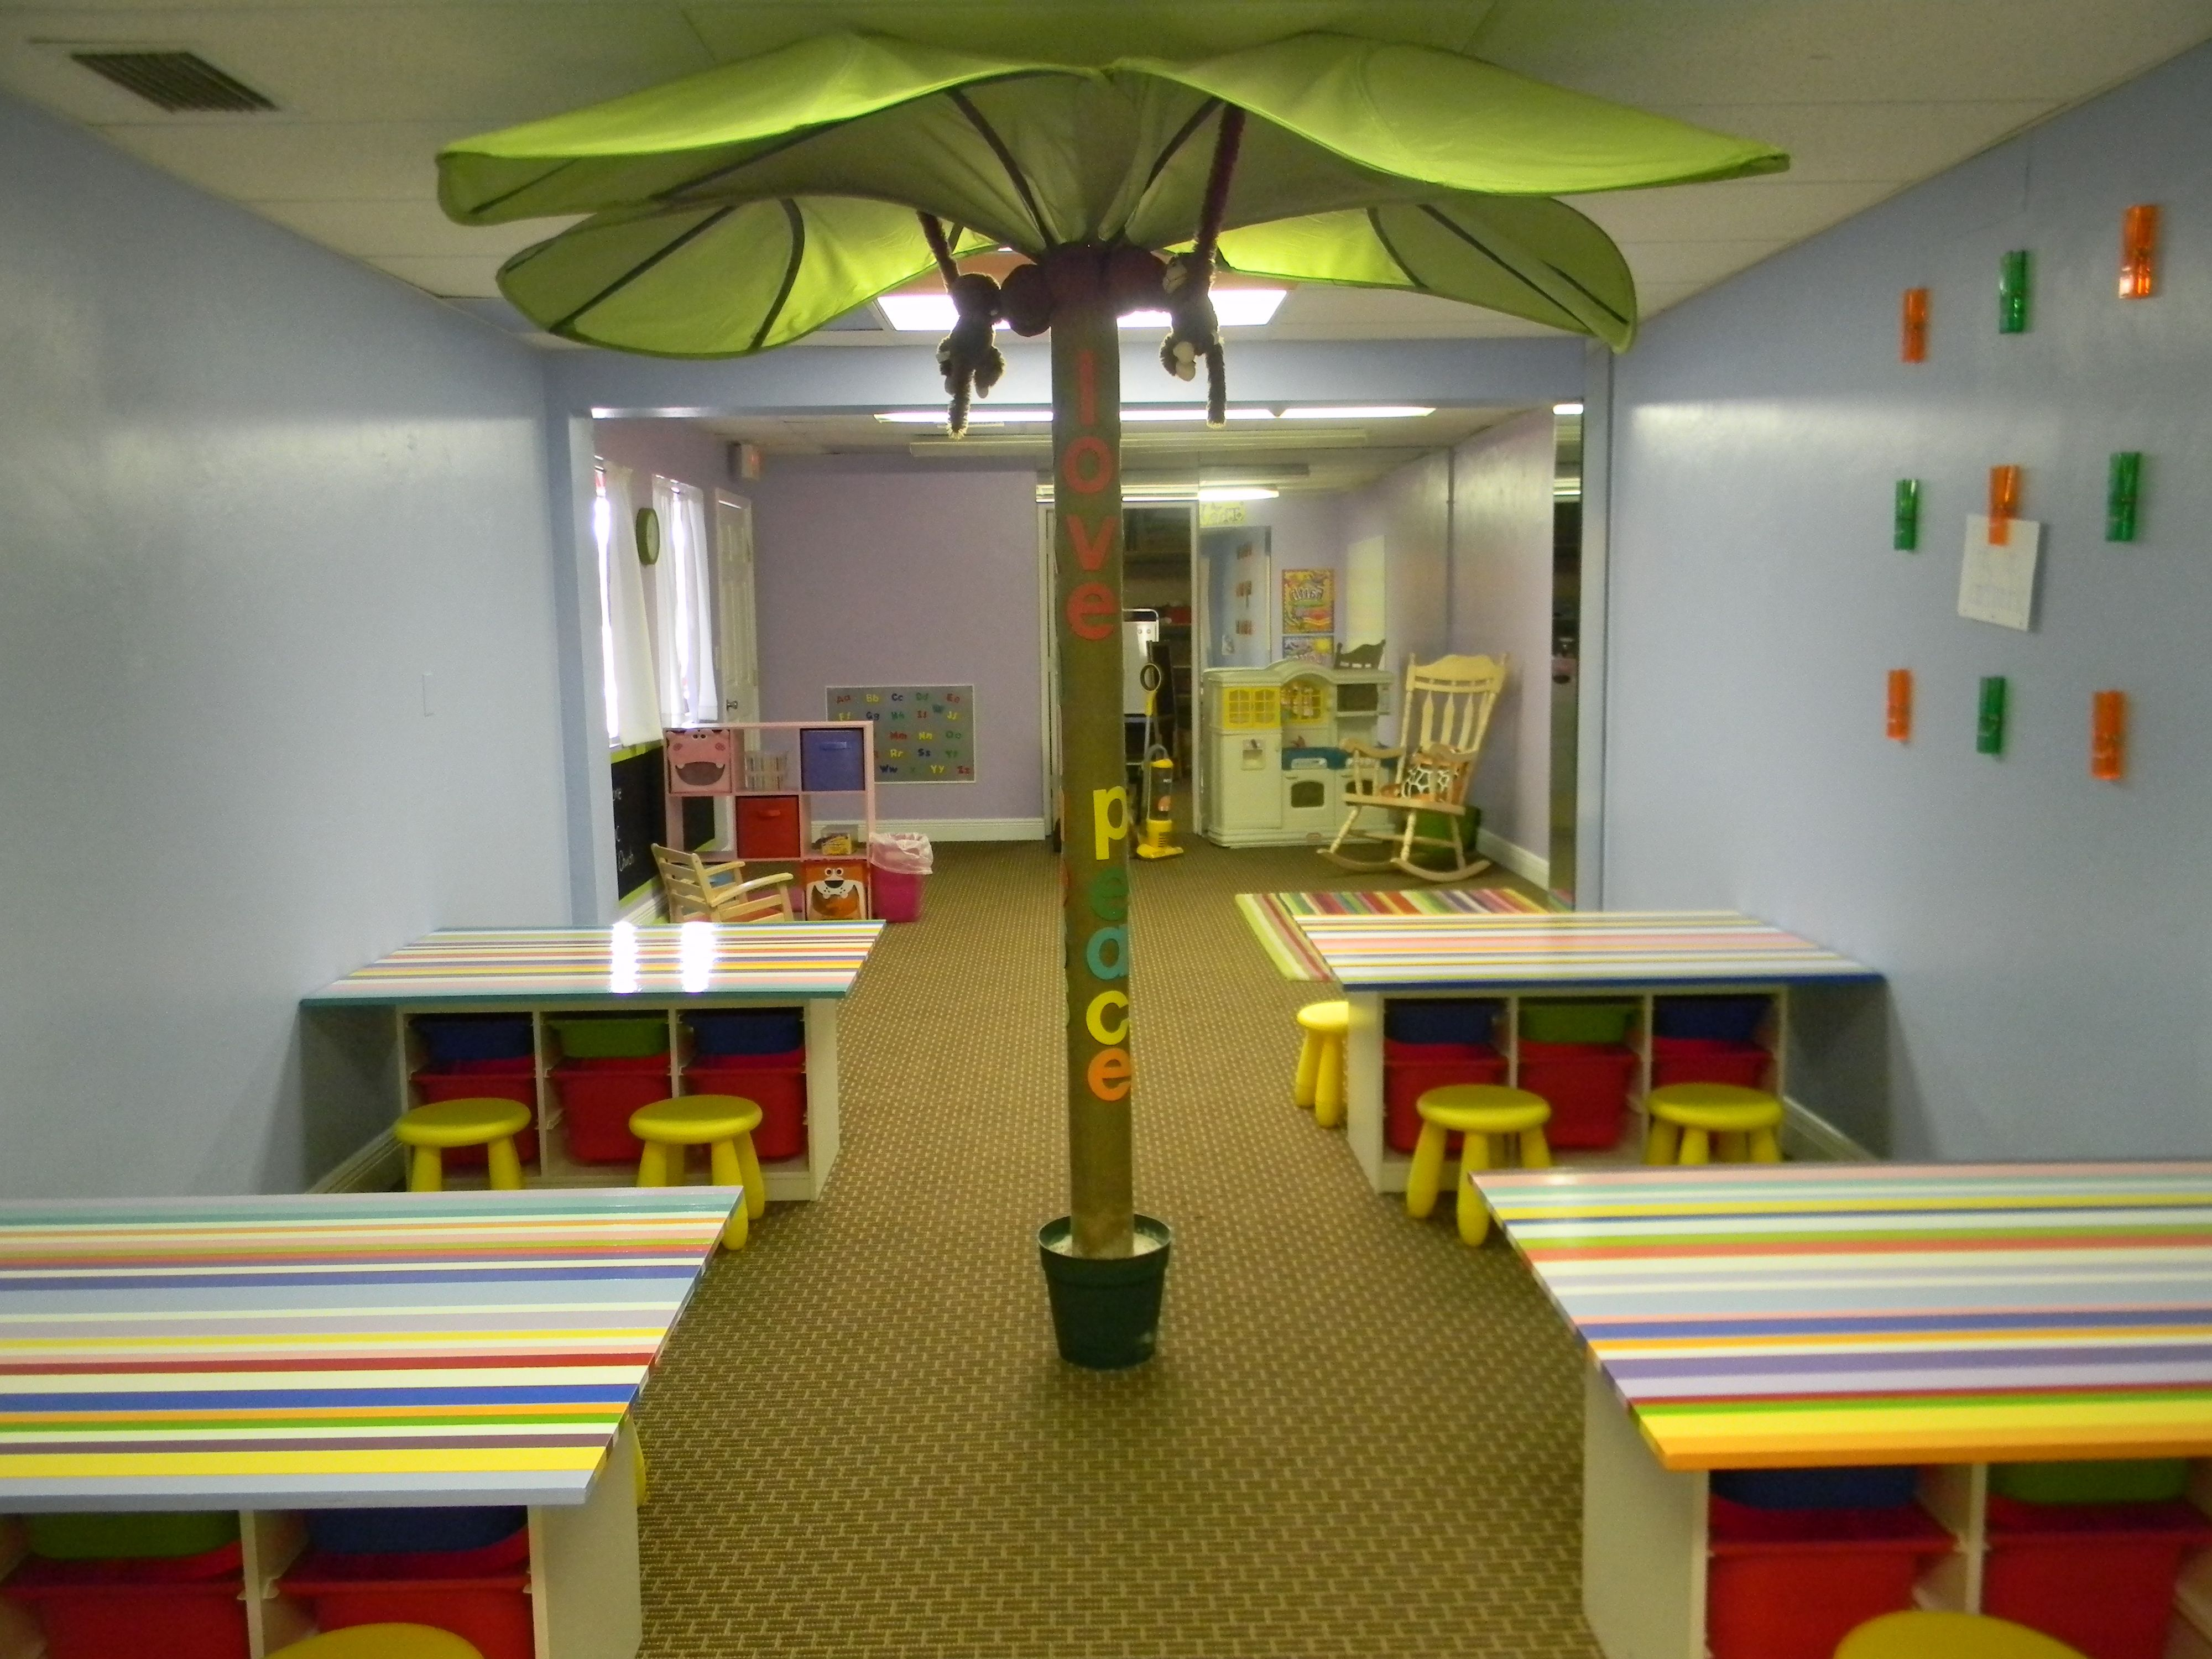 Children's church makeover on a budget.